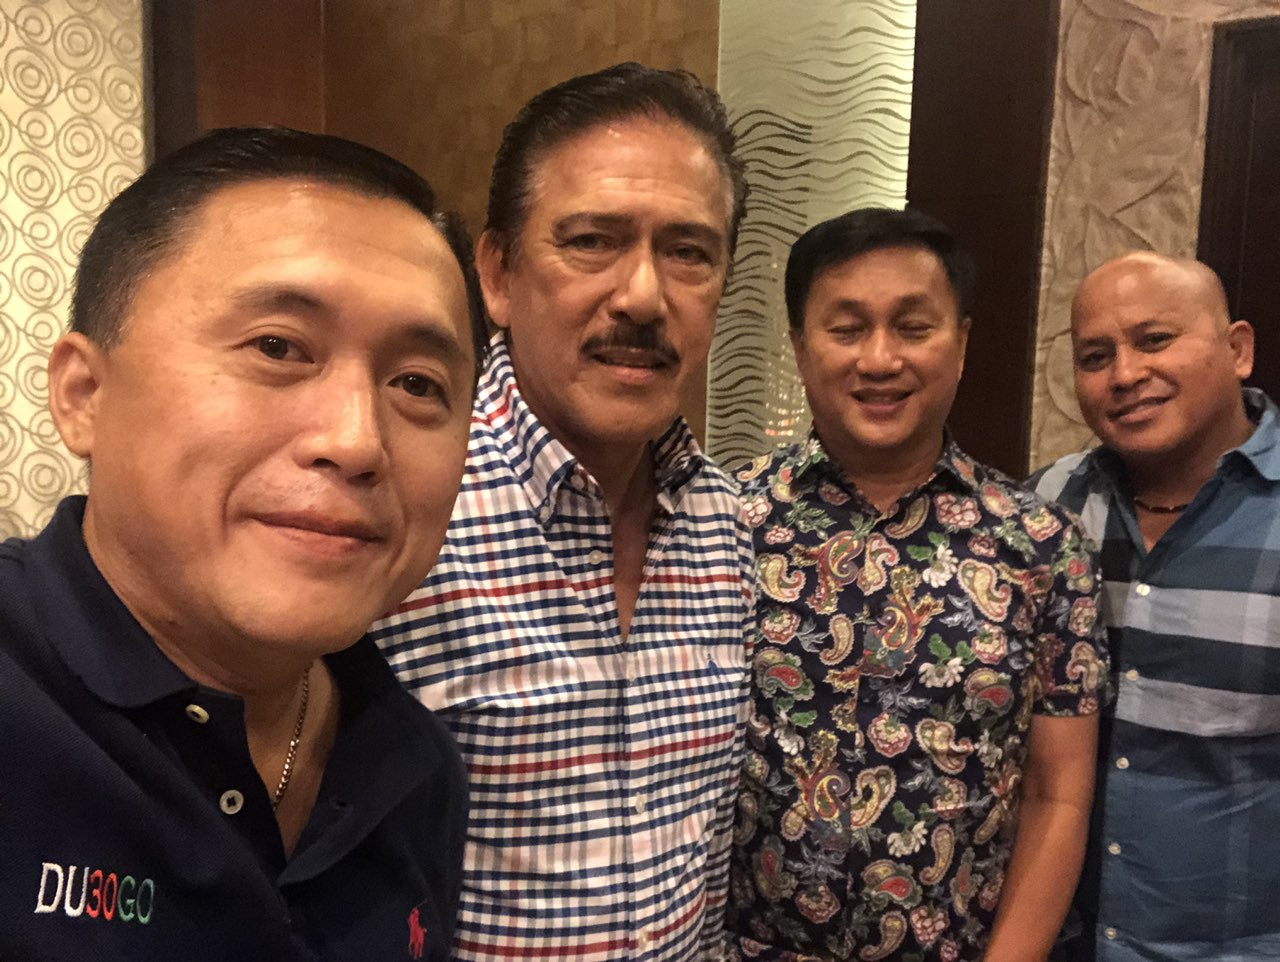 SEPARATE MEETING. Senate President Vicente Sotto III meets separately with the 3 new senators from PDP-Laban to 'clarify' some issues. Photo from Bong Go